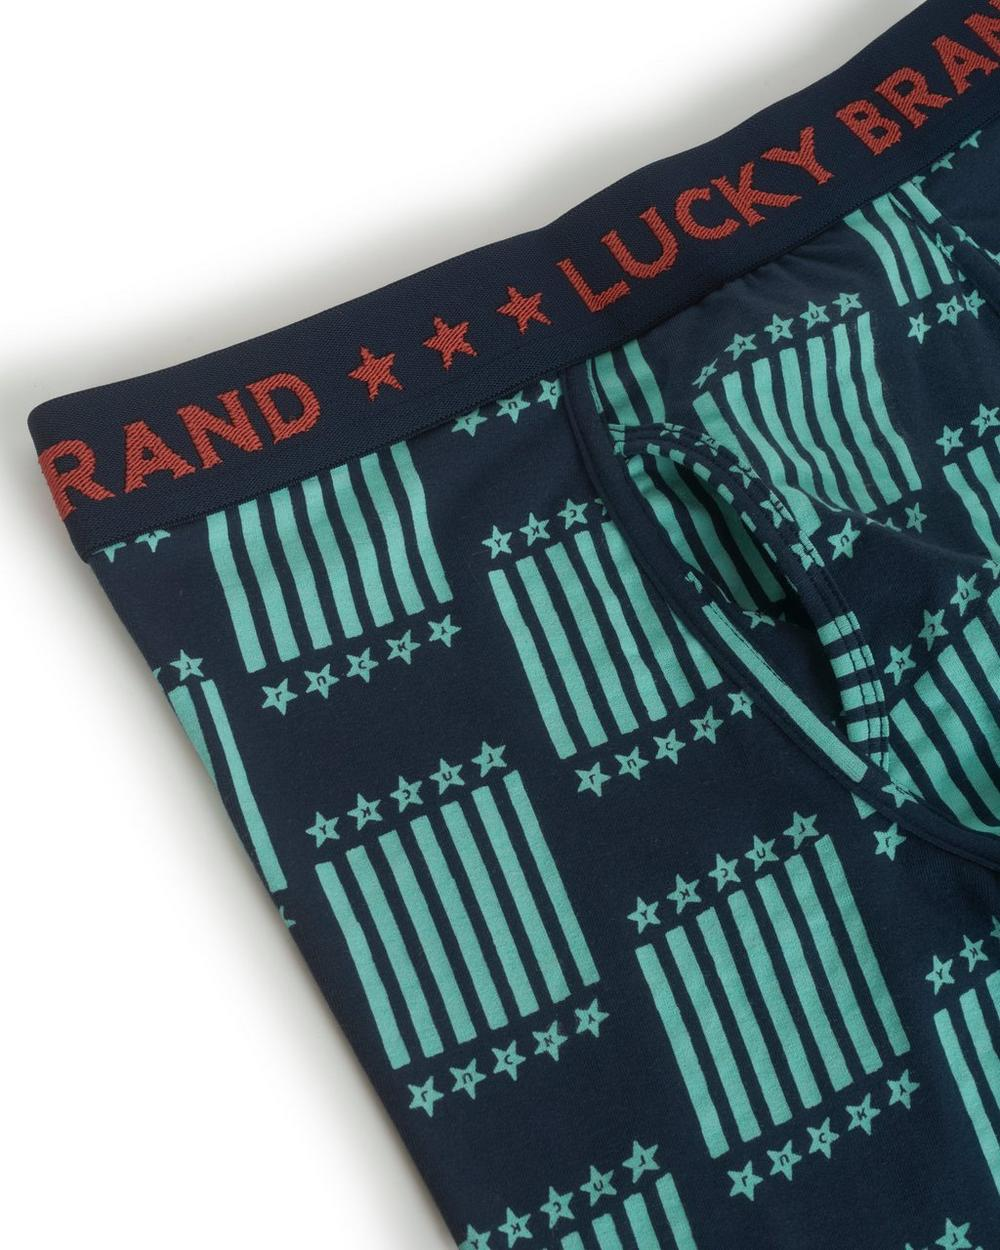 LUCKY STARS BOXER BRIEFS, image 2